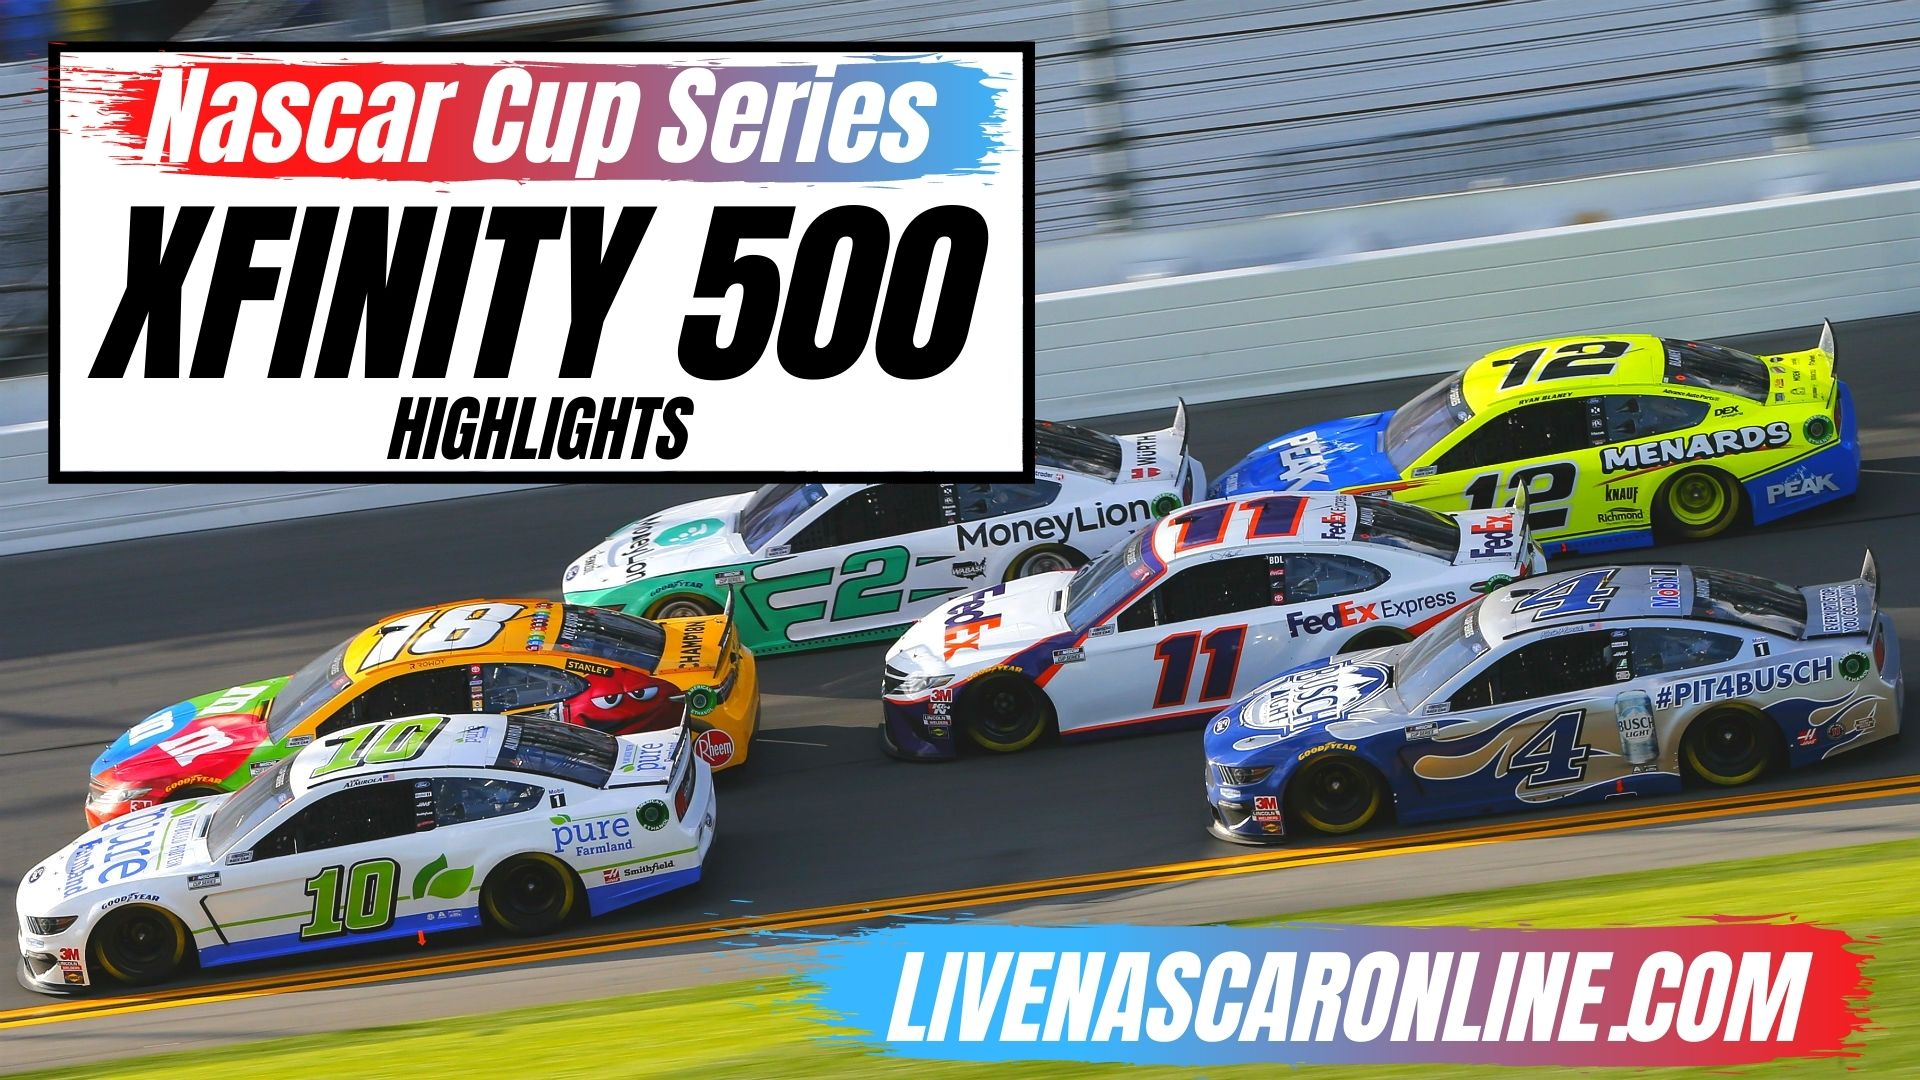 Xfinity 500 Highlights 2020 NASCAR Cup Series